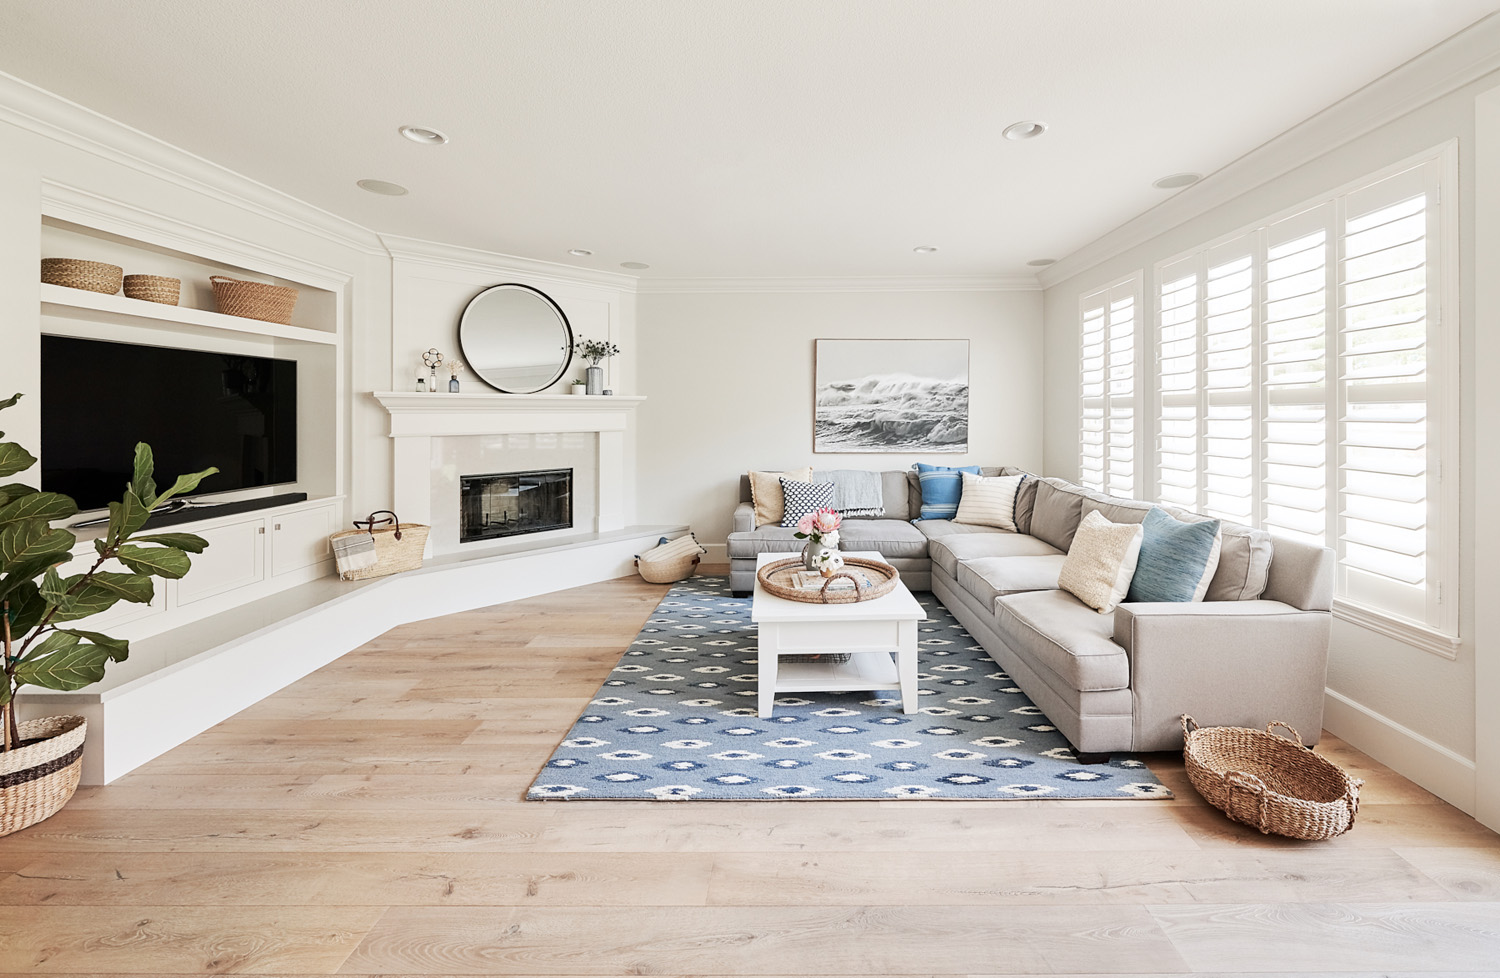 House By The Sea Complete Family Room.jpg